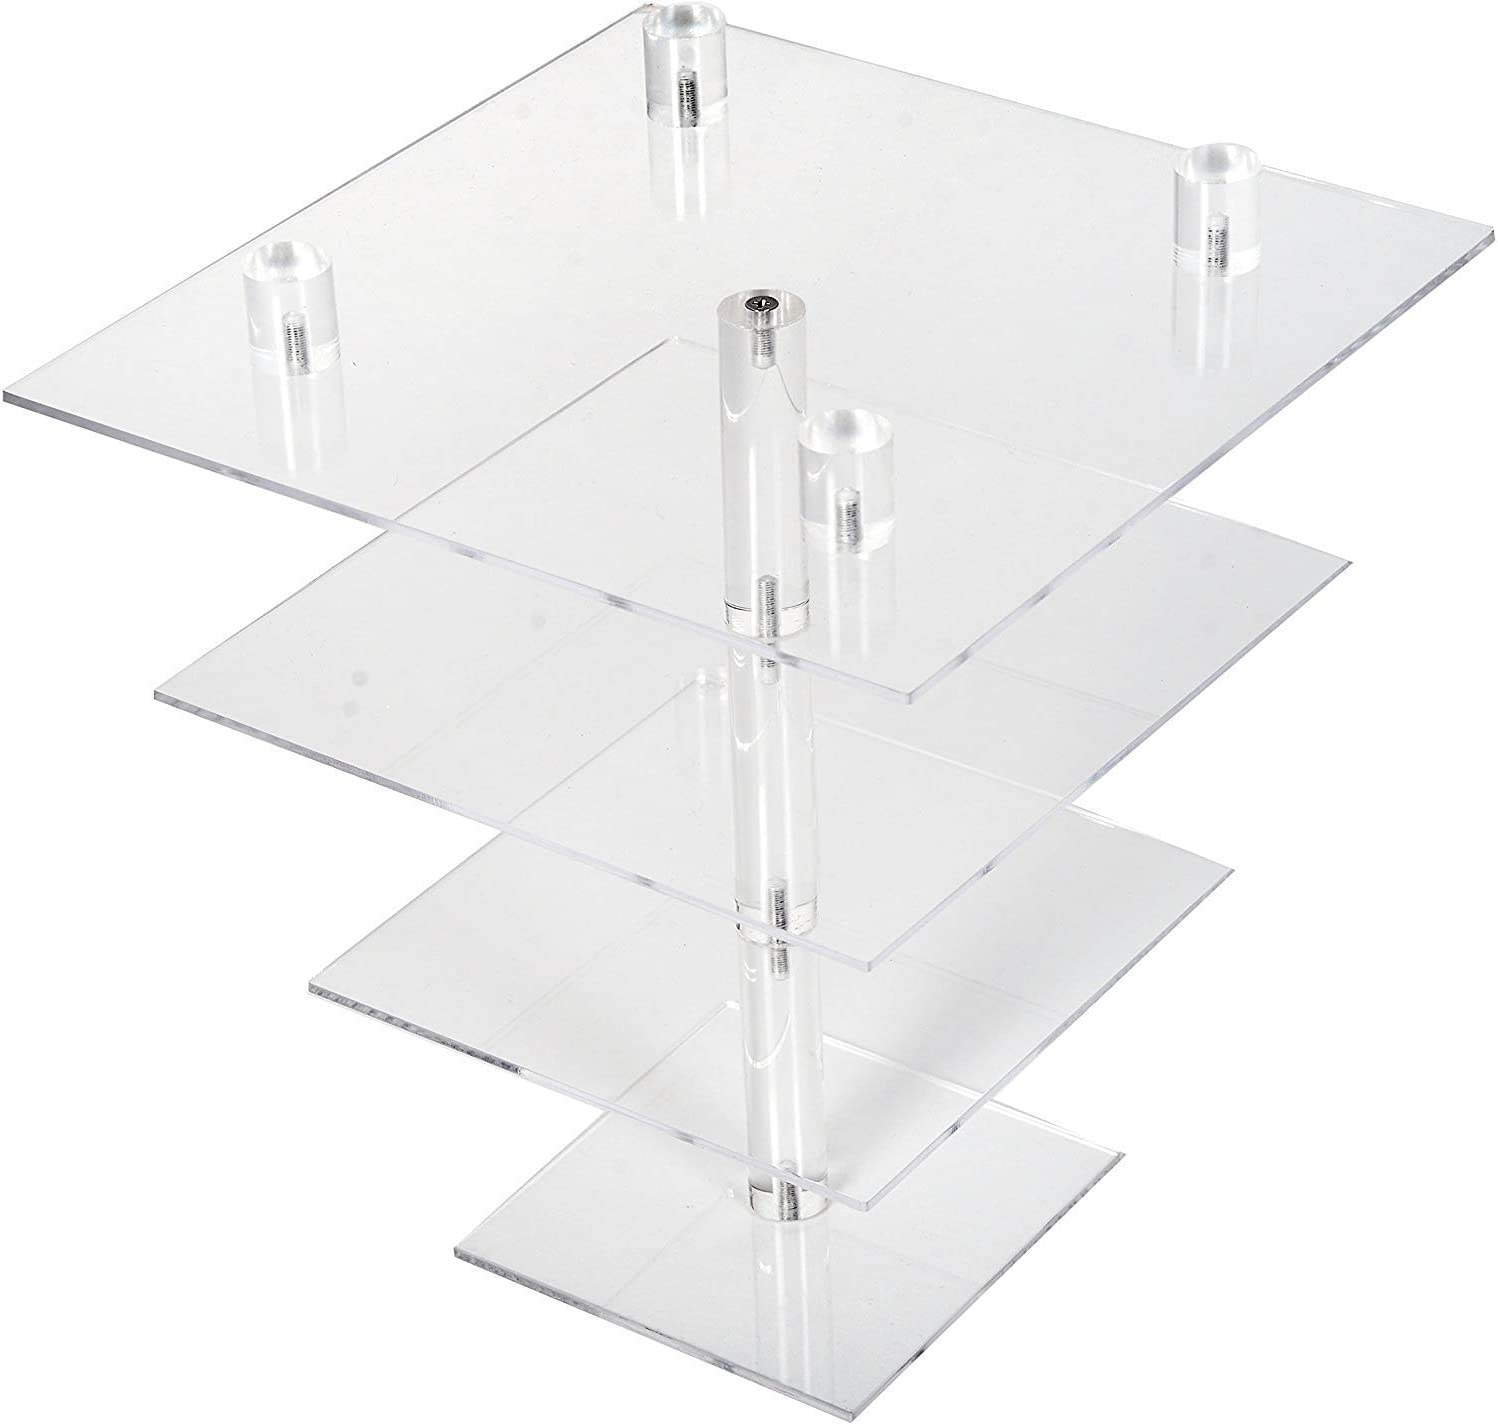 LoveDisplay Wedding Acrylic 4 Tiers Square Clear Cupcake Display Stand Dessert Cupcake Tower Stand with Base